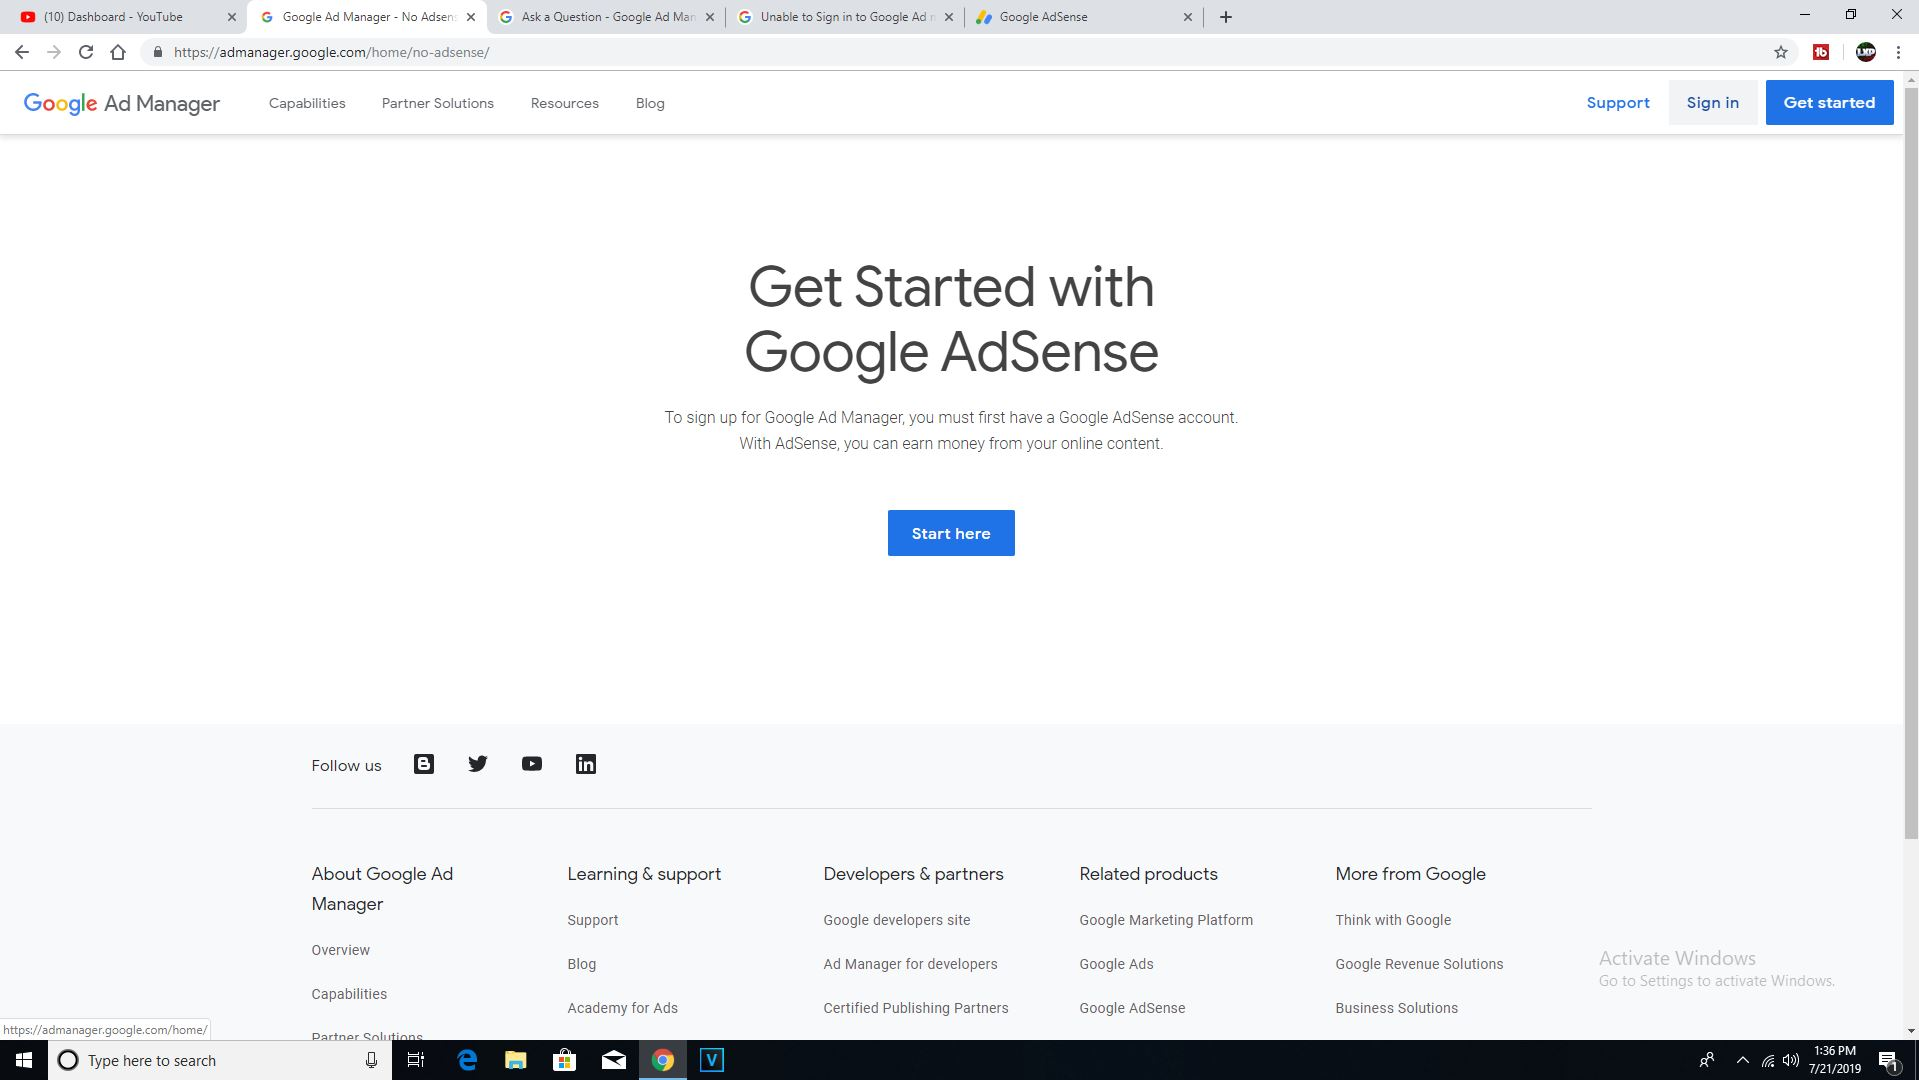 I'm having trouble getting started with google ad manger - Google Ad